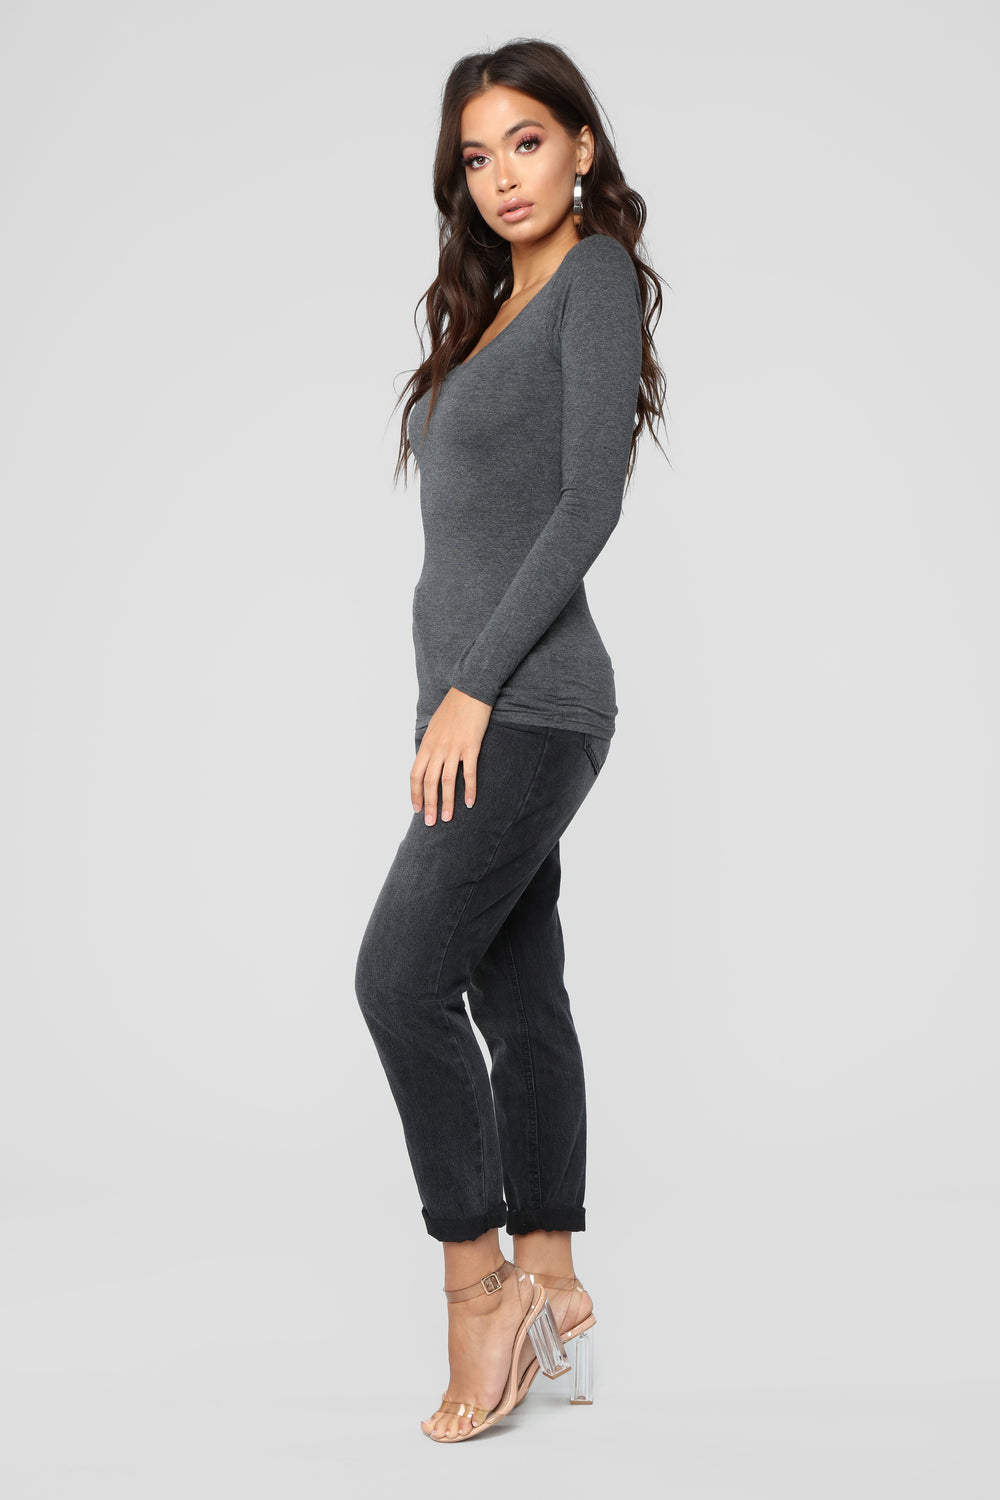 Briana Long Sleeve Top - Charcoal